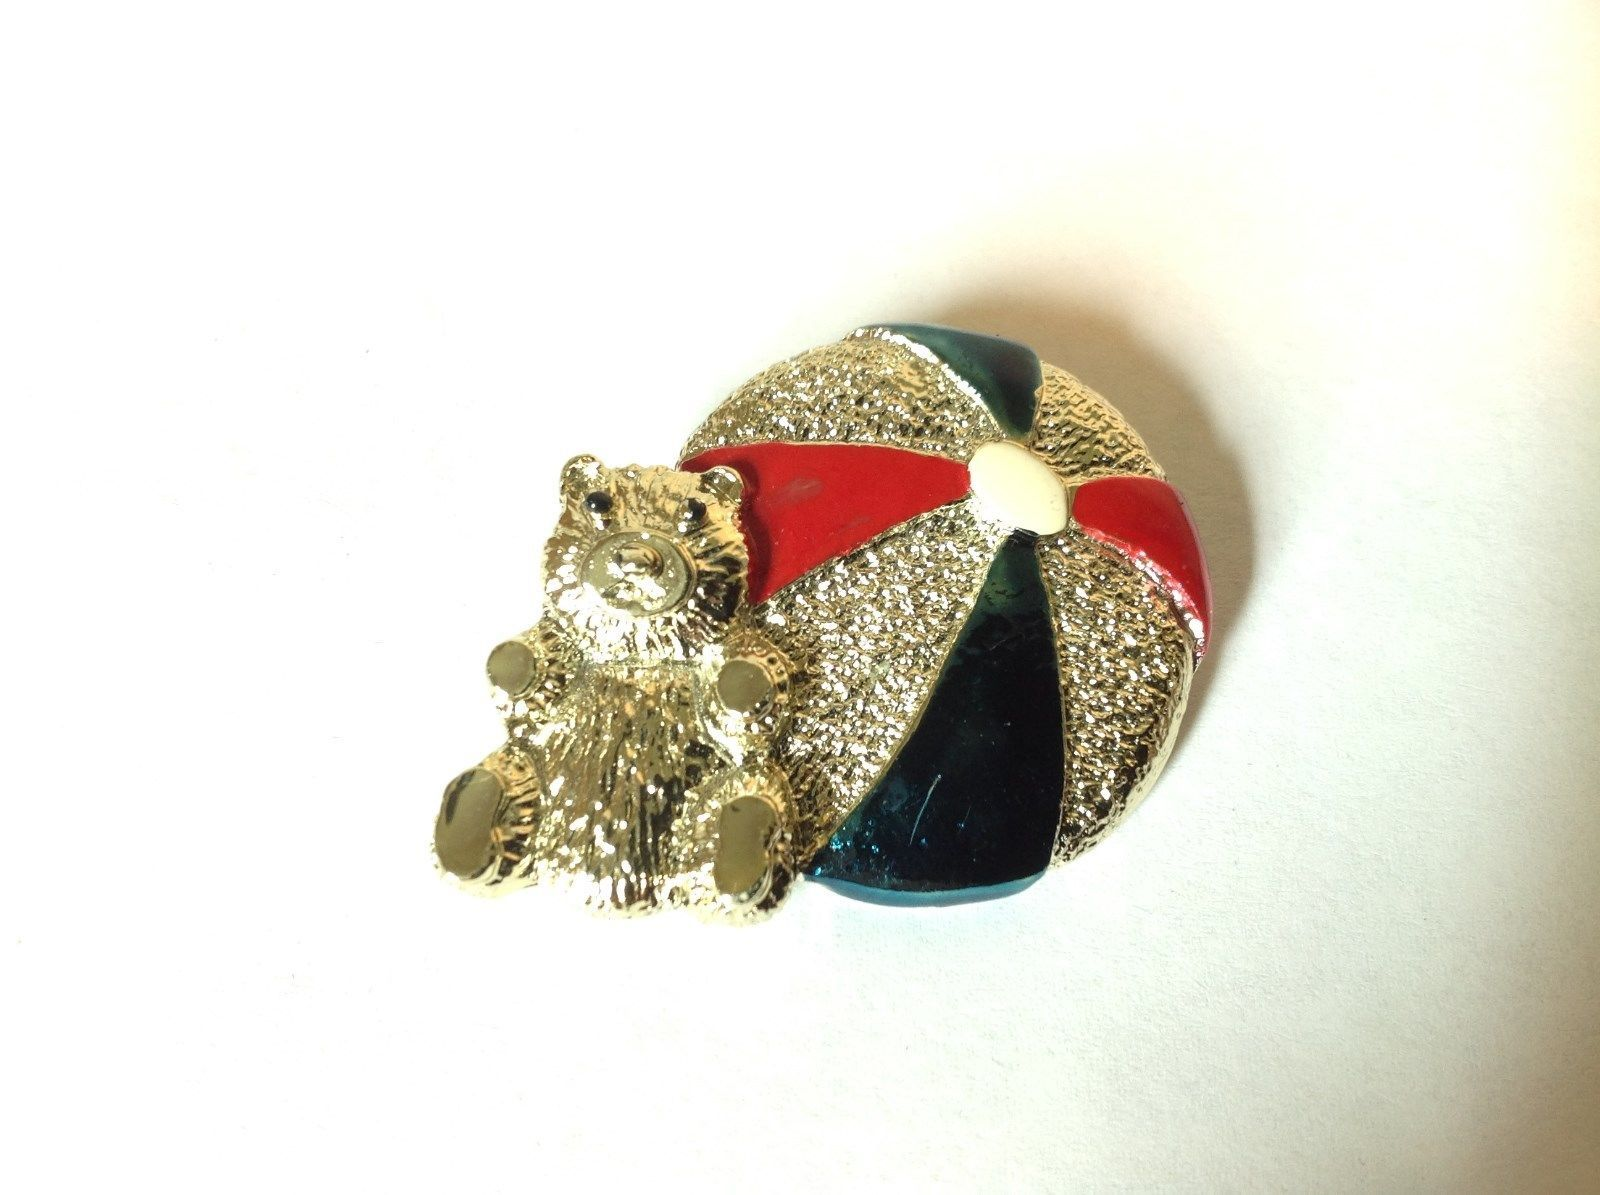 Bear w beach  Ball Gold Tone Metal Pin Brooch Hinge Clasp Red Blue Enamel Shiny